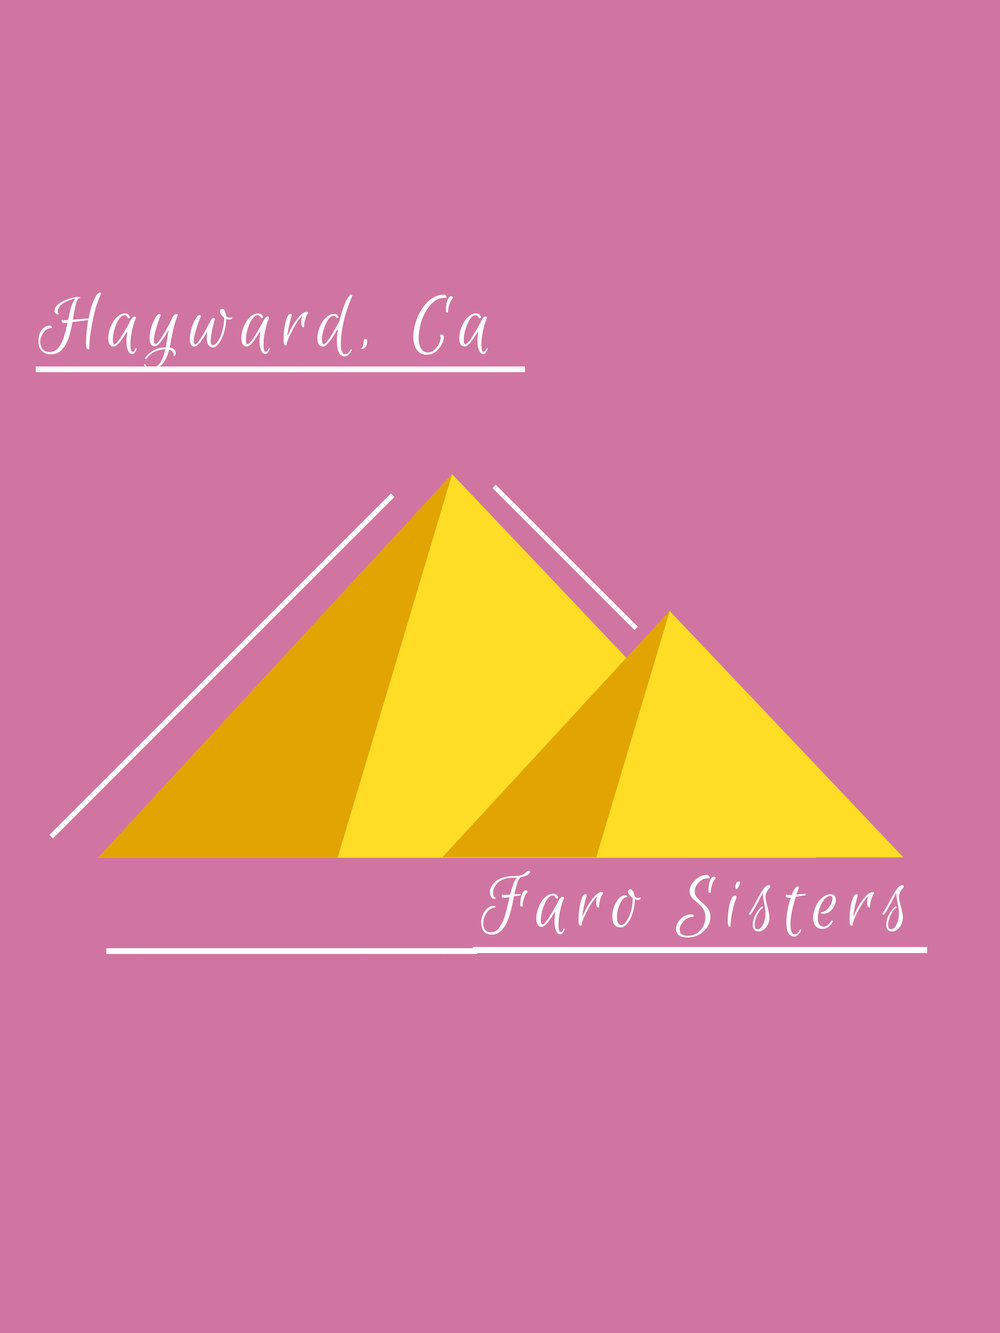 The Hayward FaroSisters.jpg